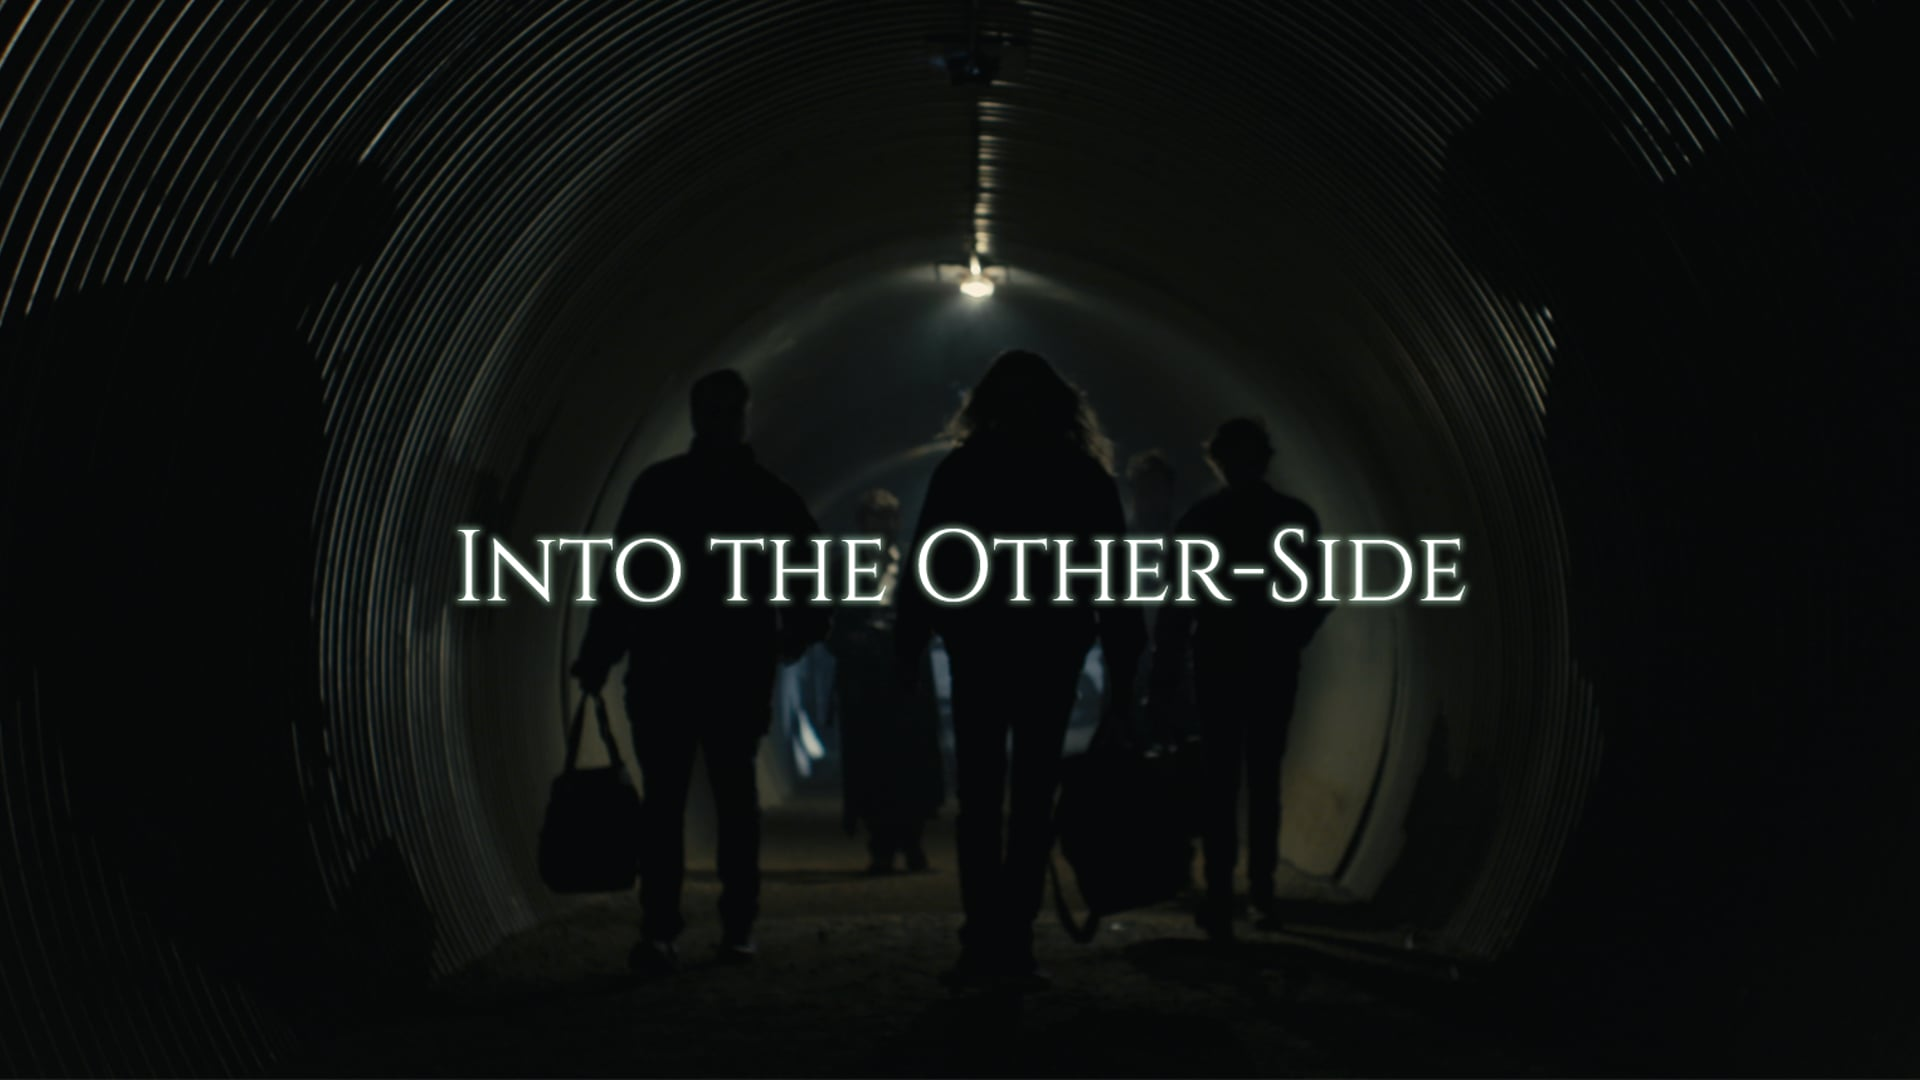 Into the Other-Side (2018)